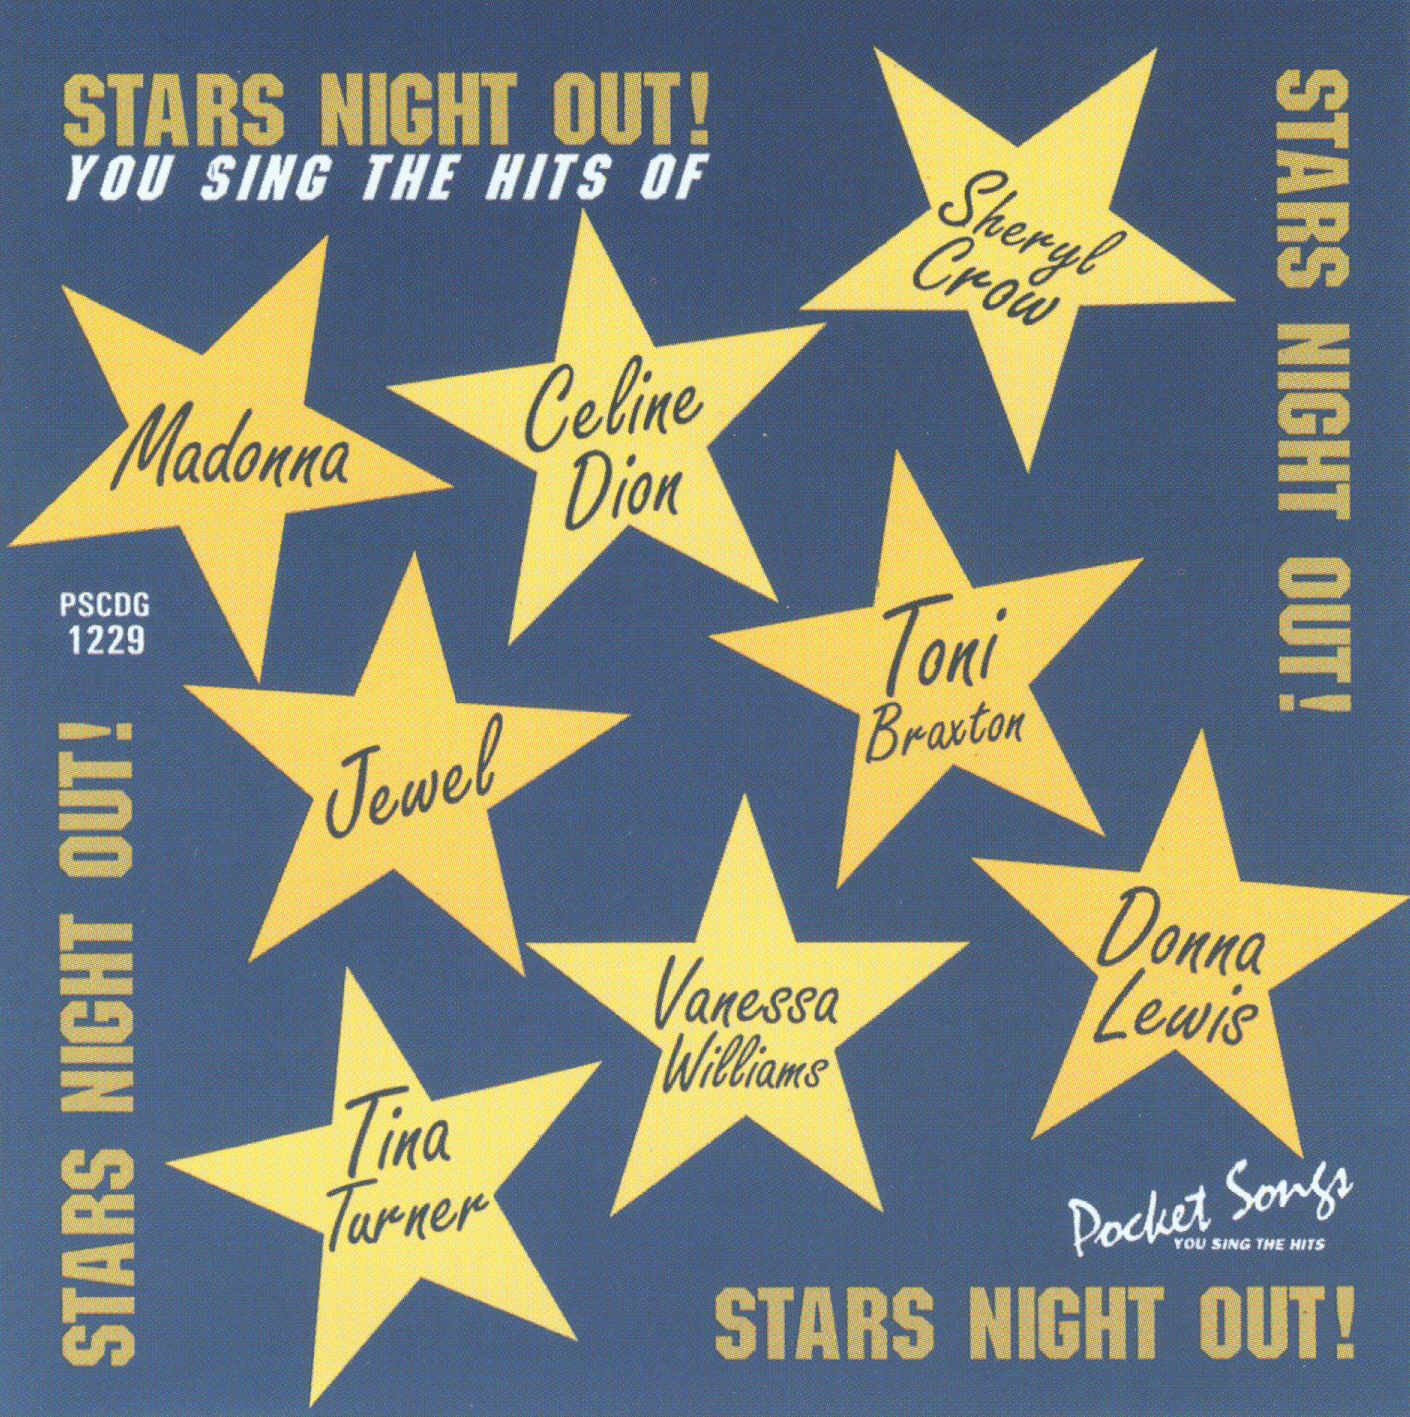 STARS NIGHT OUT     Pocket Songs     PS1229